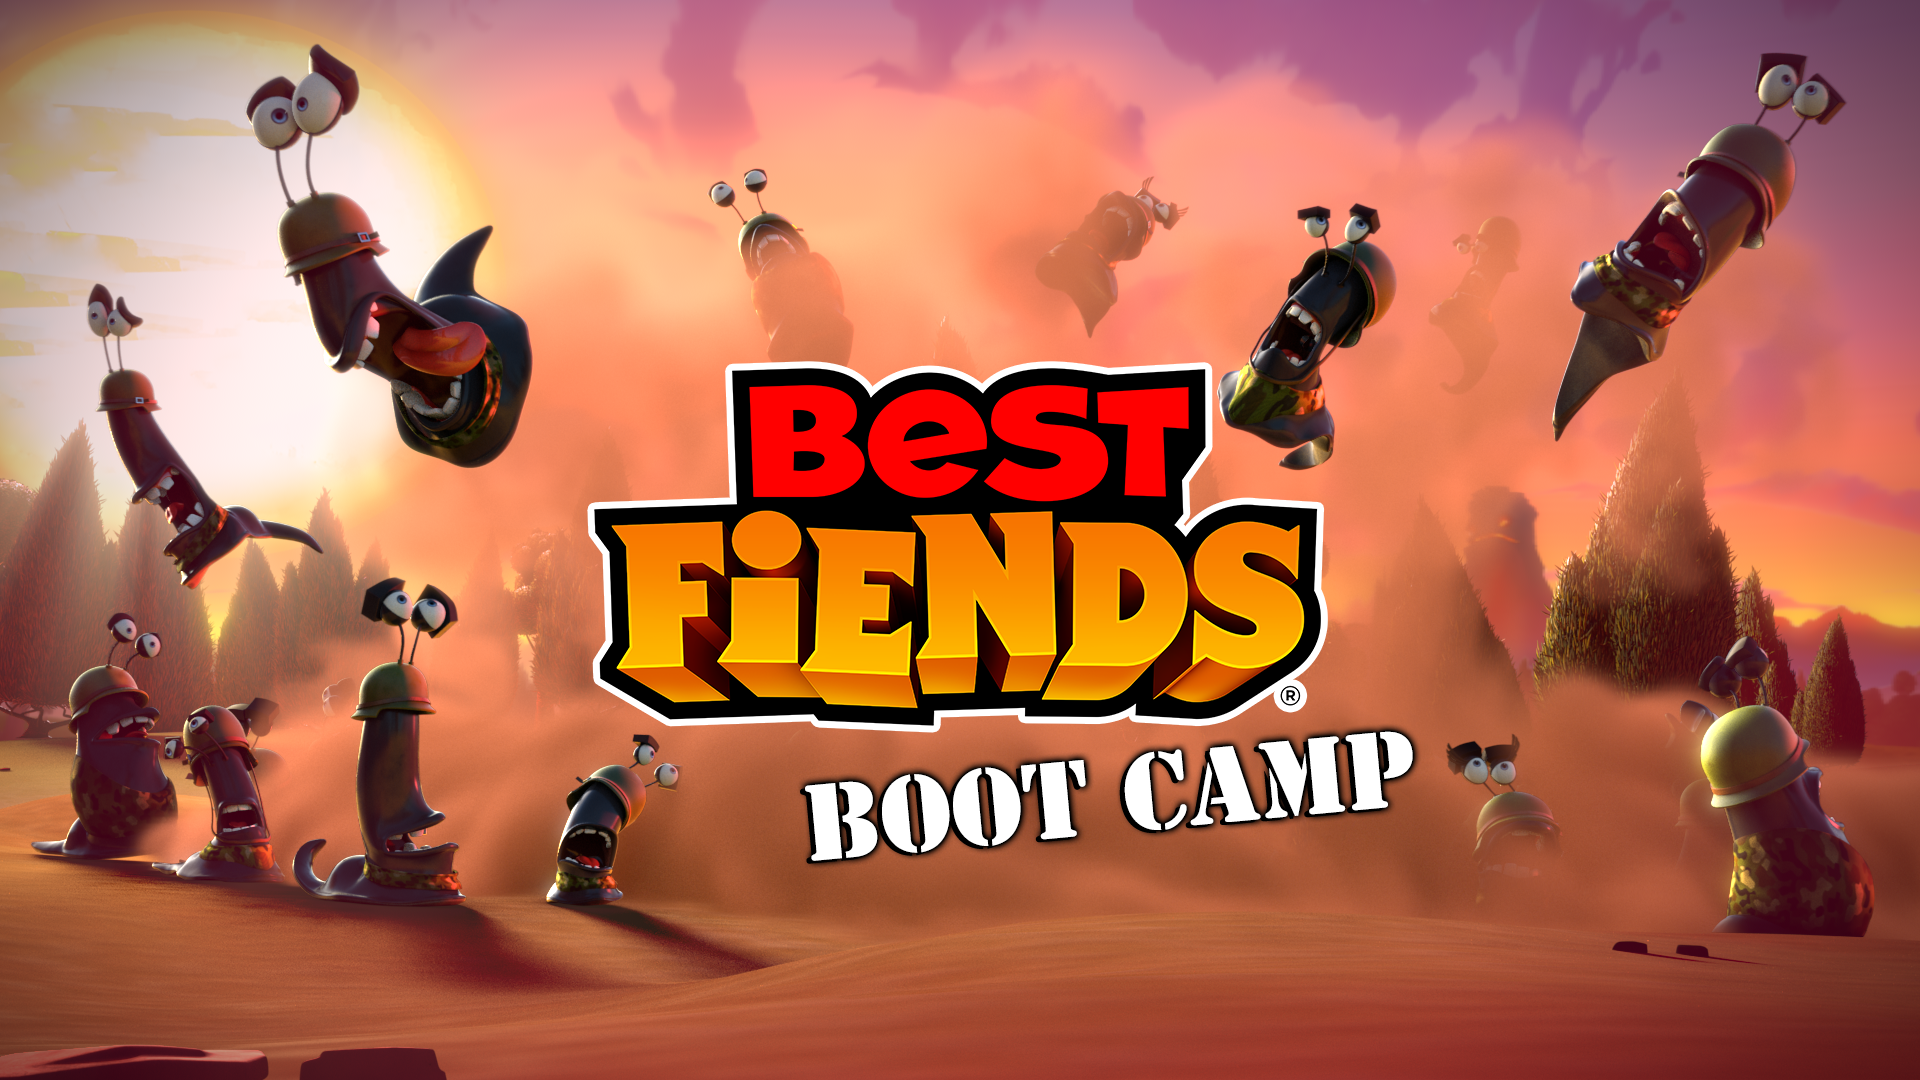 boot_camp_keyart_logo_overlay_03 (1)